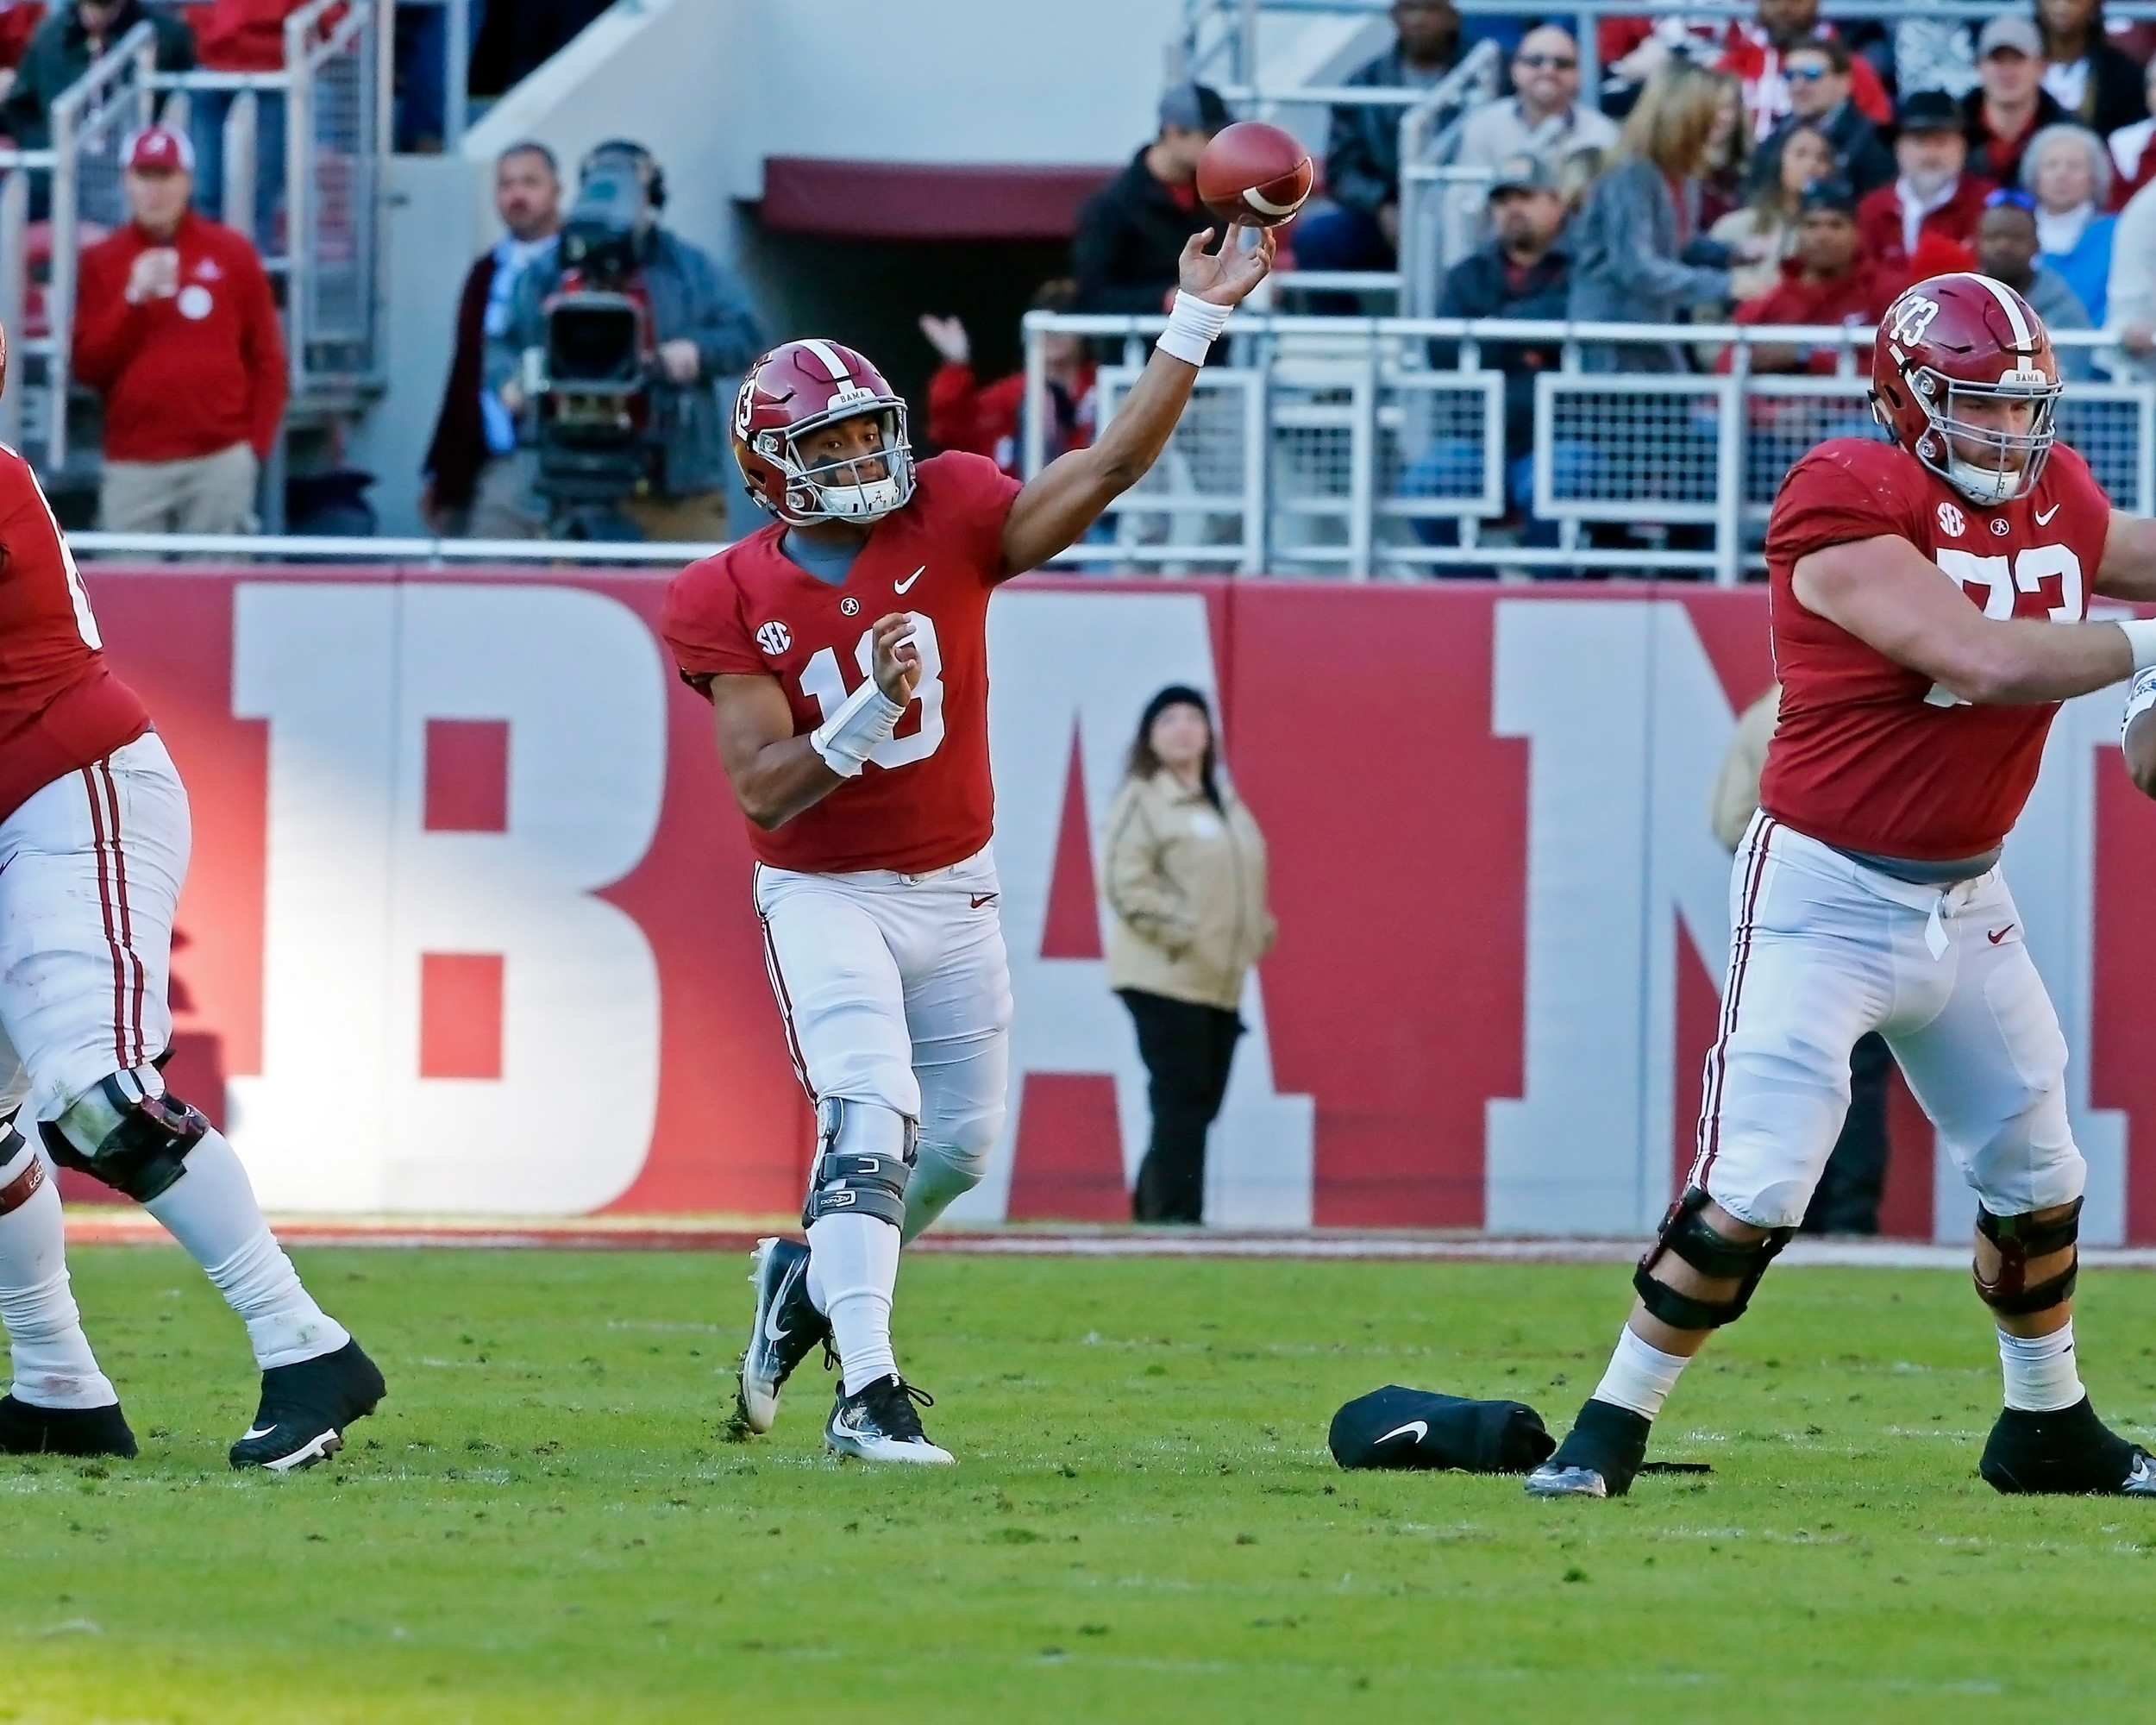 Alabama Crimson Tide quarterback Tua Tagovailoa (13) makes a throw during the game between Mississippi State and the University of Alabama at Bryant-Denny Stadium in Tuscaloosa, Al. Credit: Jason Clark / Daily Mountain Eagle